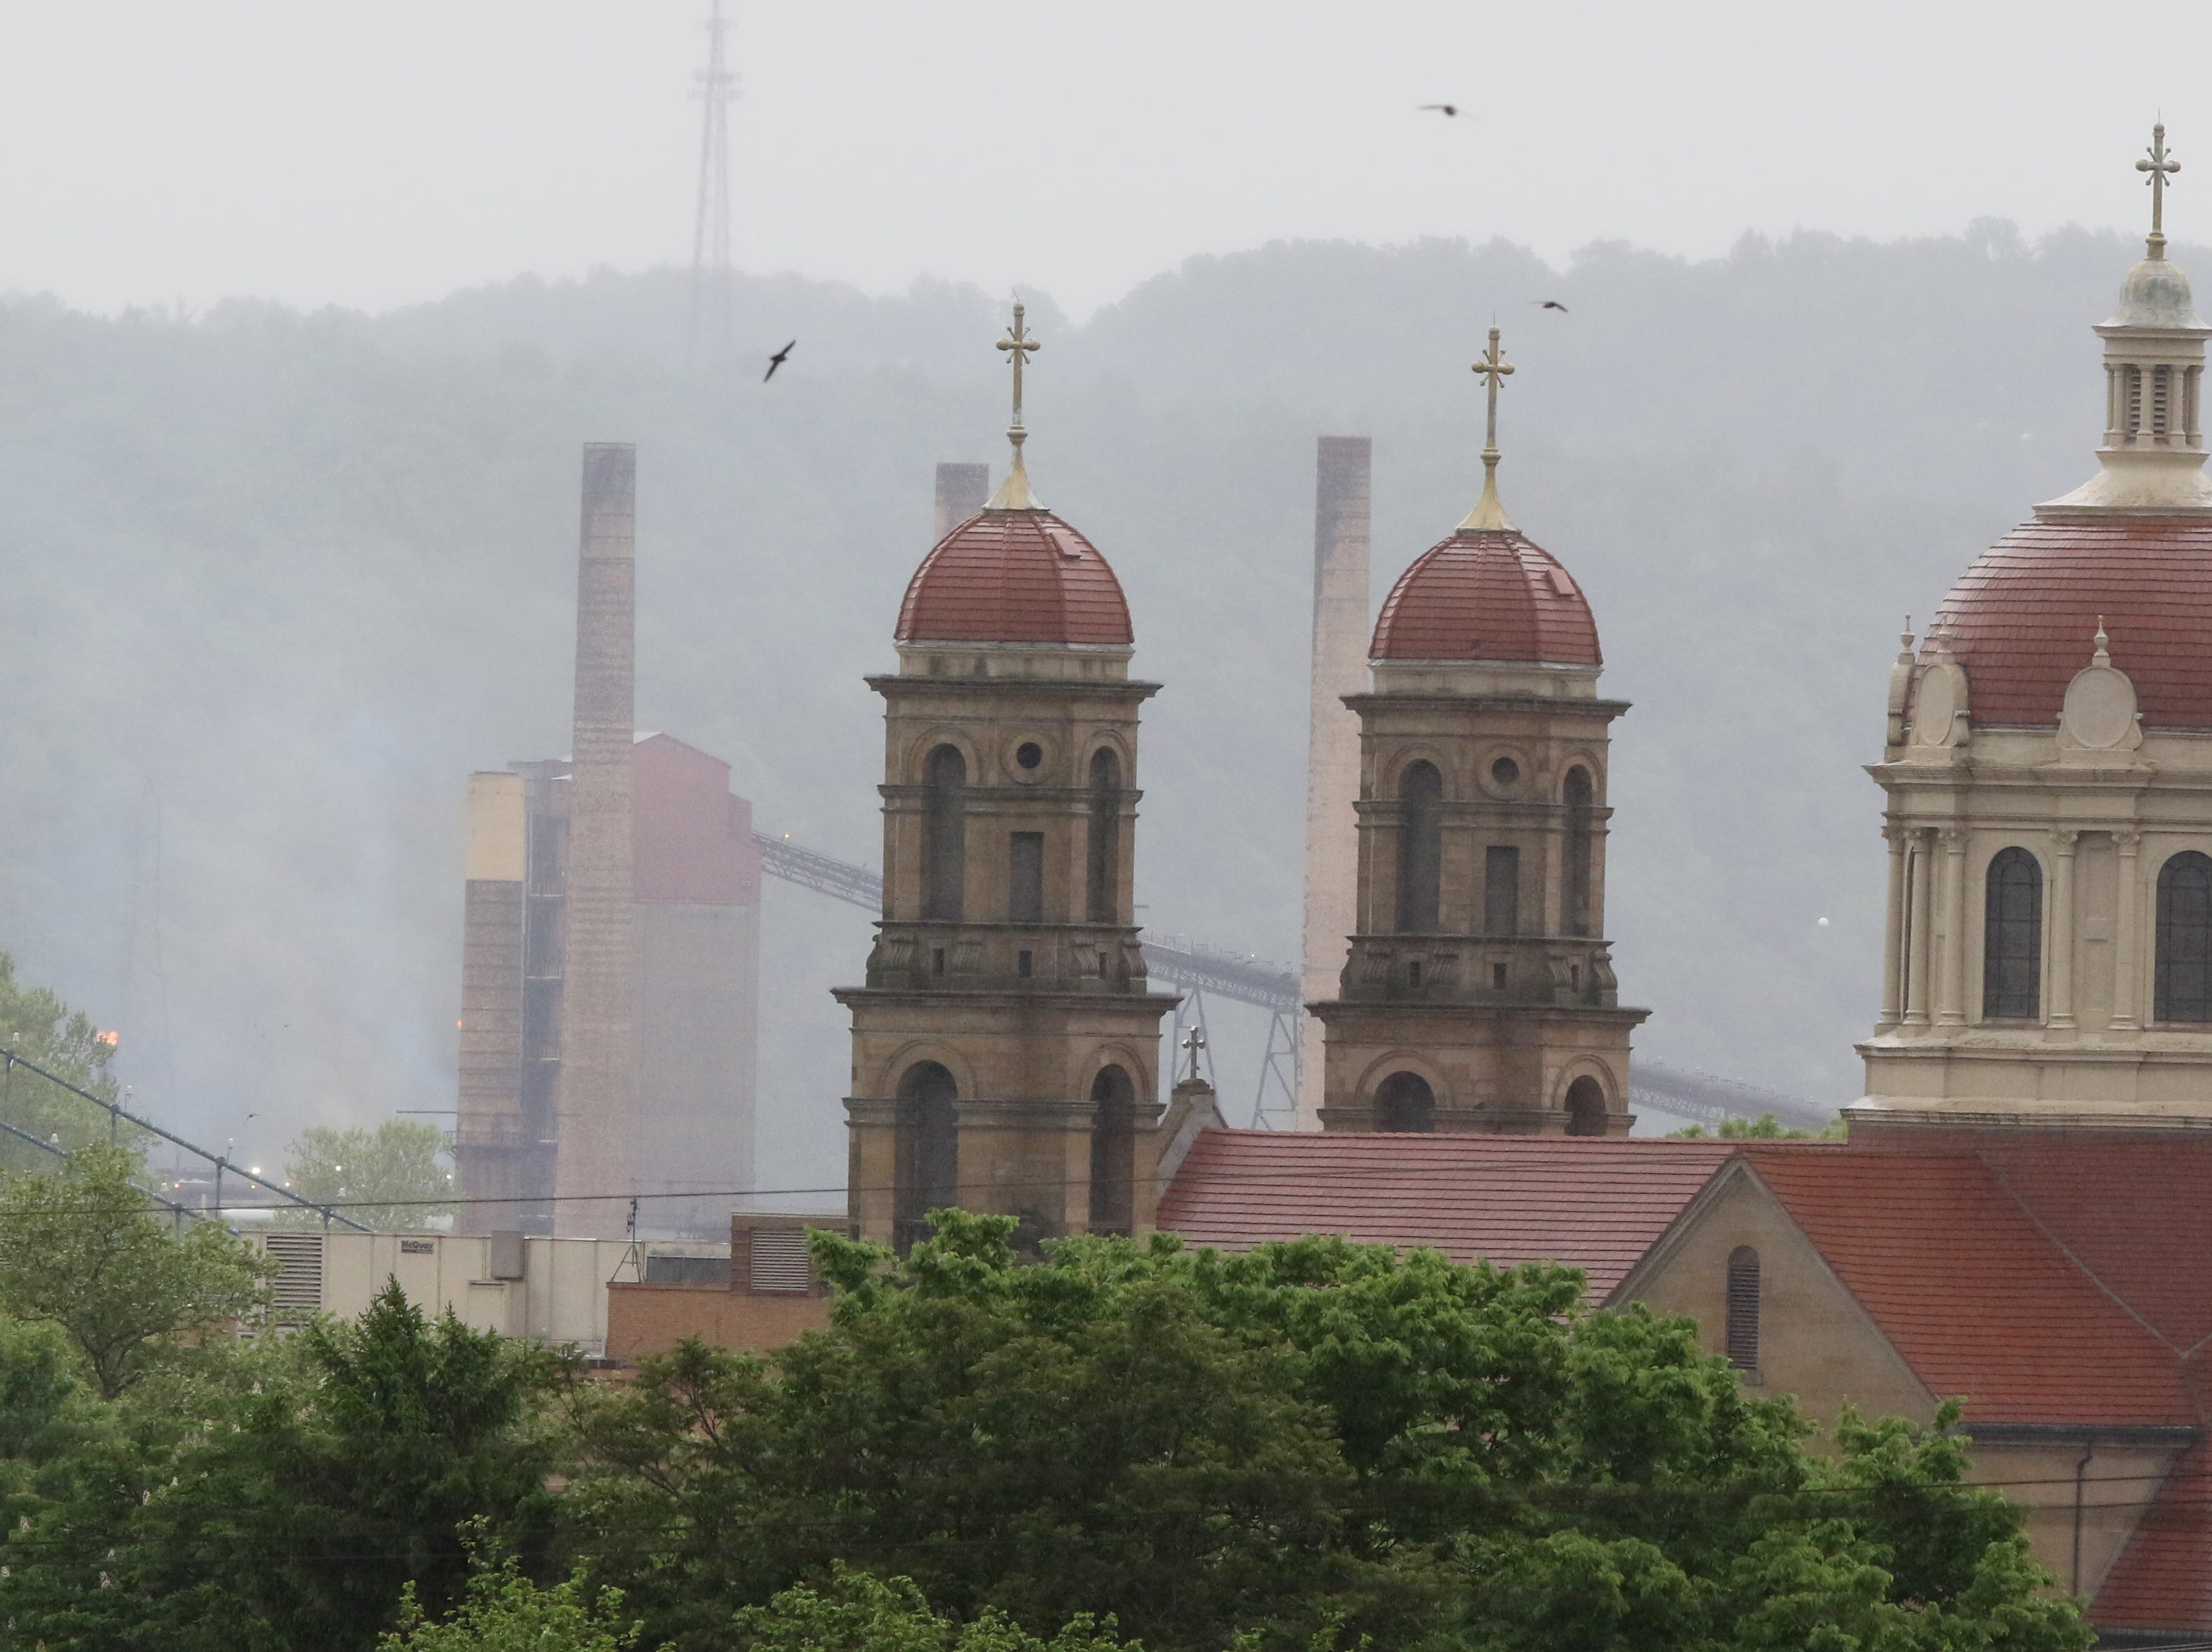 Smokestacks and church spires dominate the Steubenville, Ohio skyline.